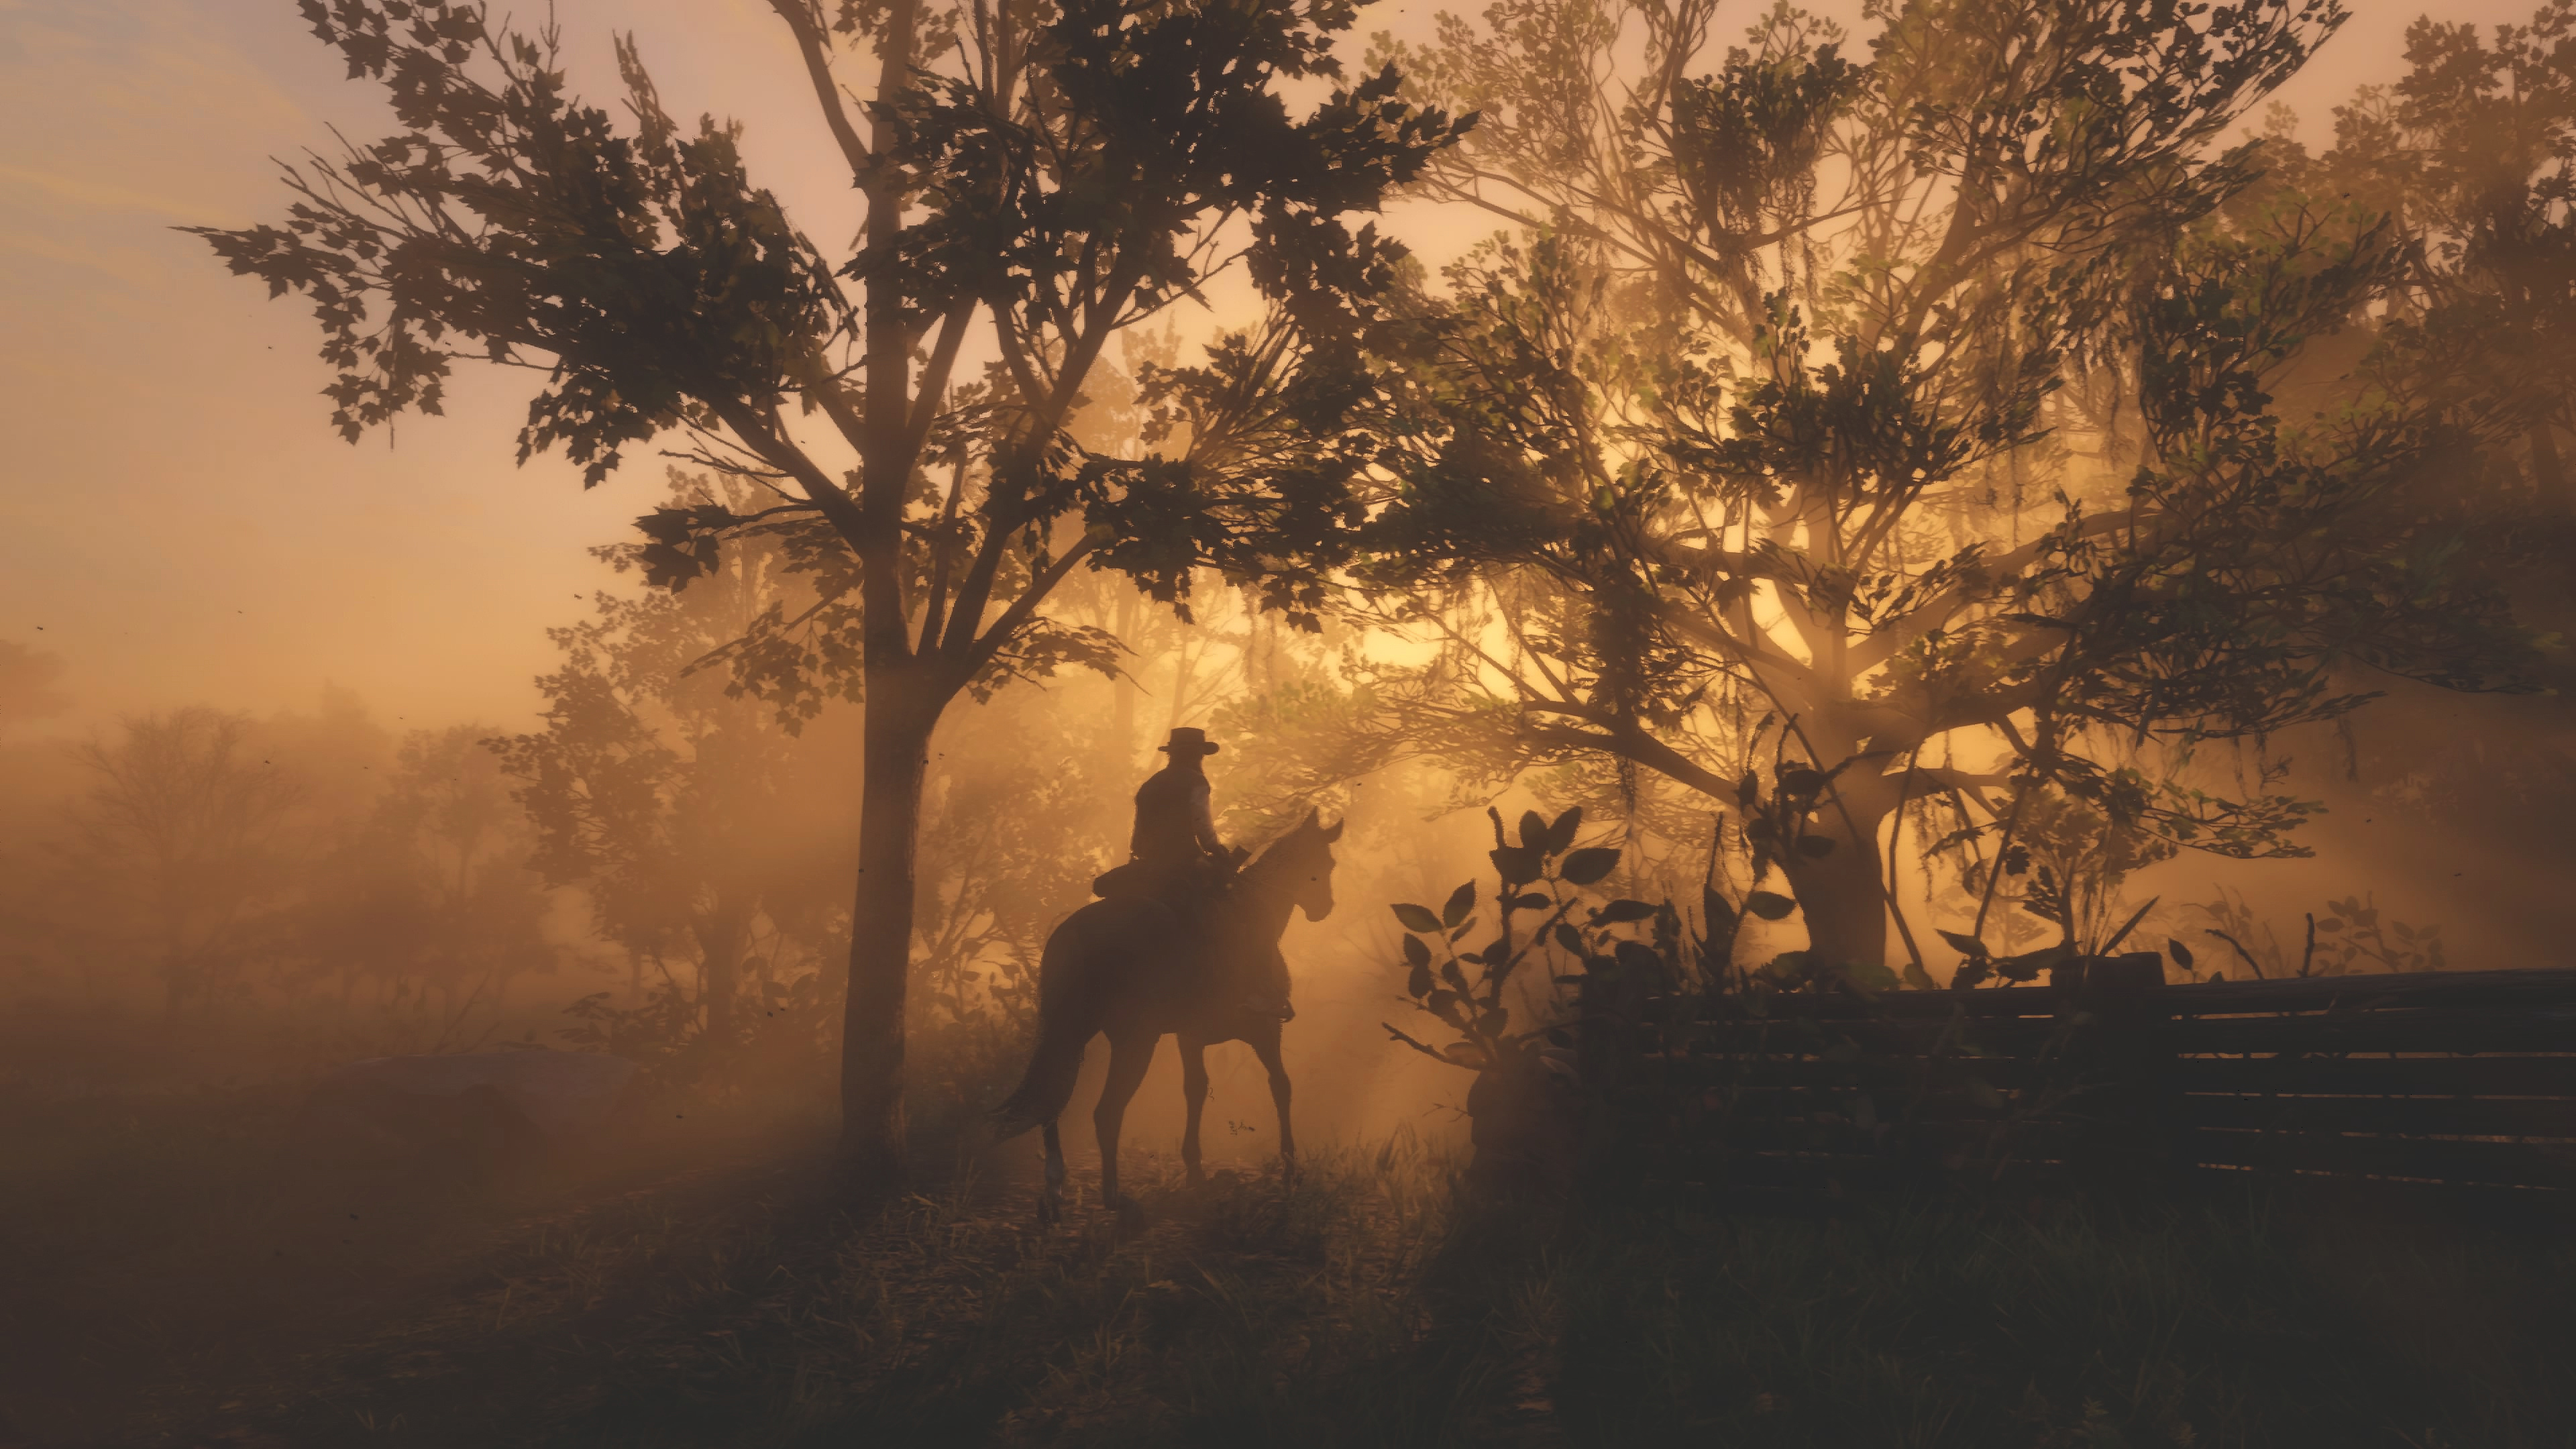 Red Dead Redemption 2 Hd Wallpapers Posted By John Mercado